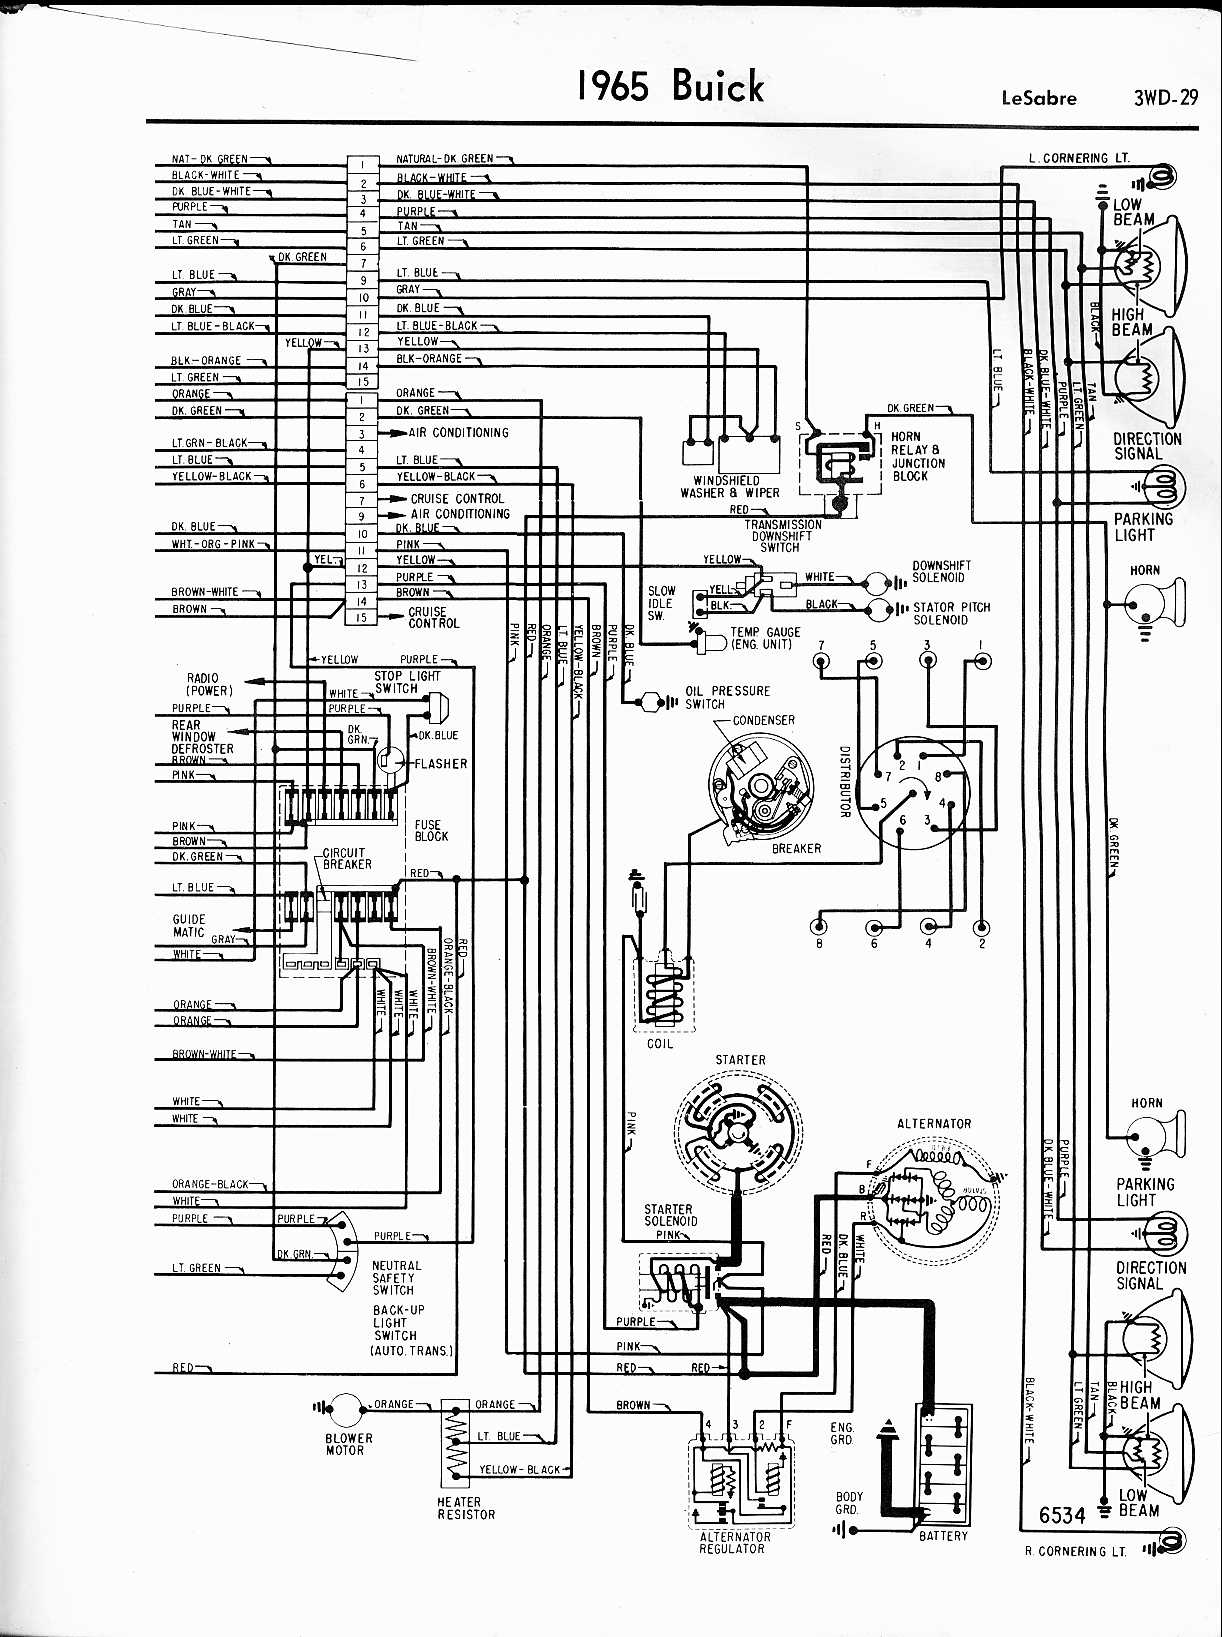 Brilliant 1972 C30 Wiring Diagram Wiring Diagram Database Wiring Cloud Ittabpendurdonanfuldomelitekicepsianuembamohammedshrineorg